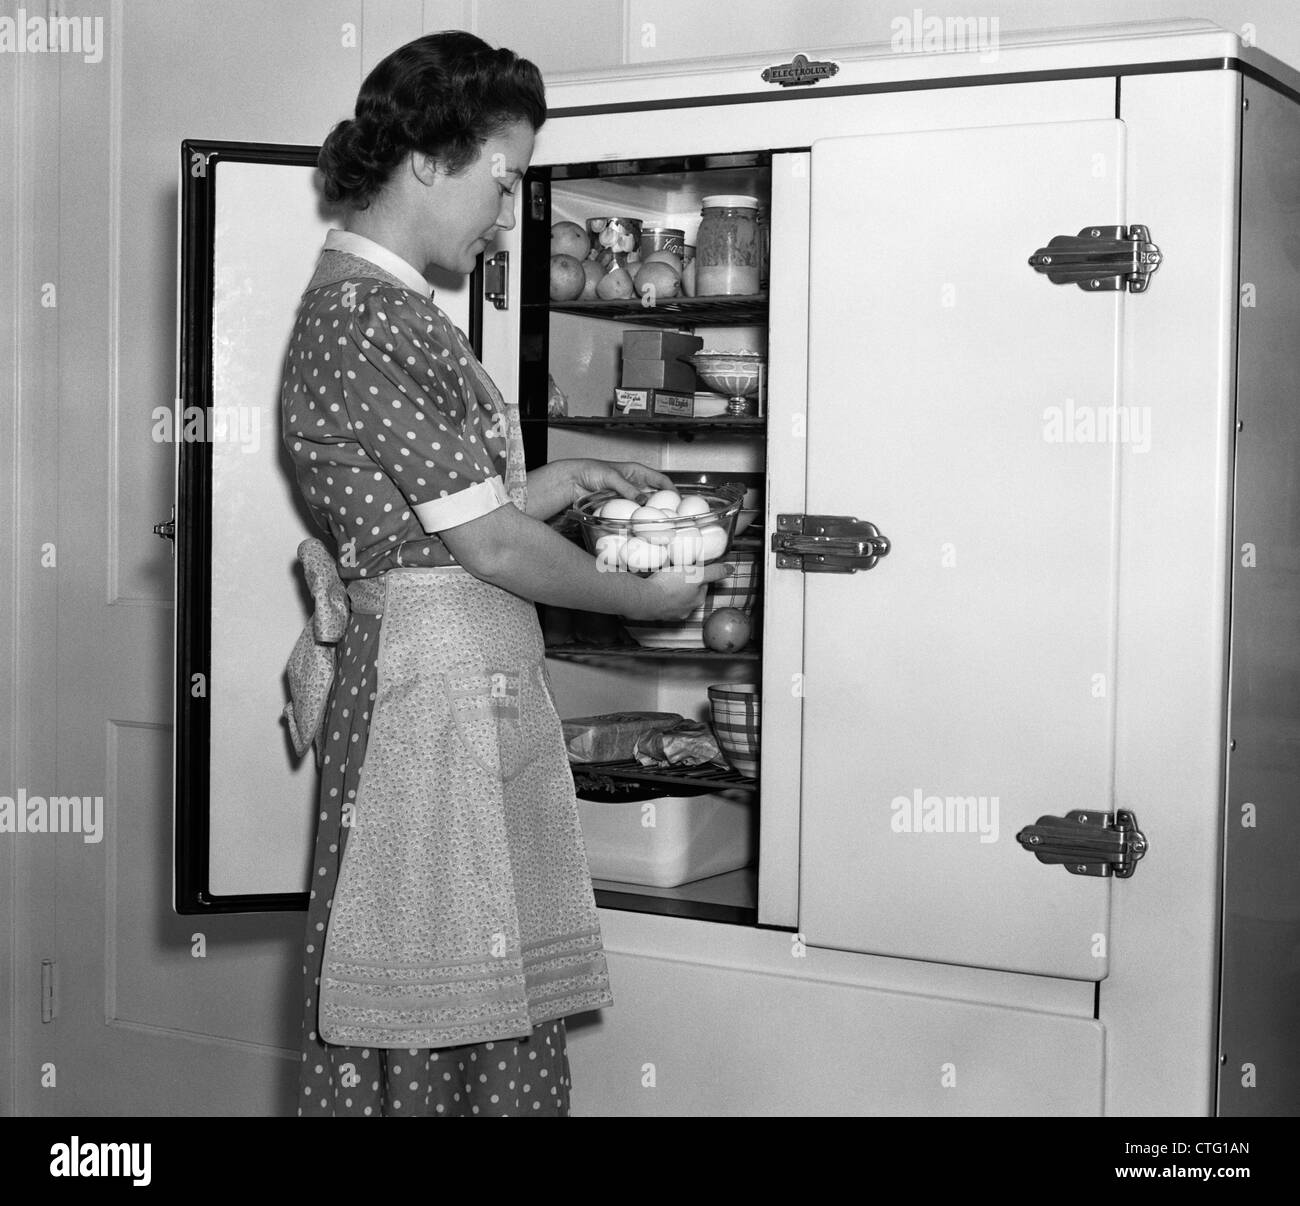 1930s housewife in apron taking eggs out of bowl from icebox   stock image appliances 1930s stock photos  u0026 appliances 1930s stock images   alamy  rh   alamy com